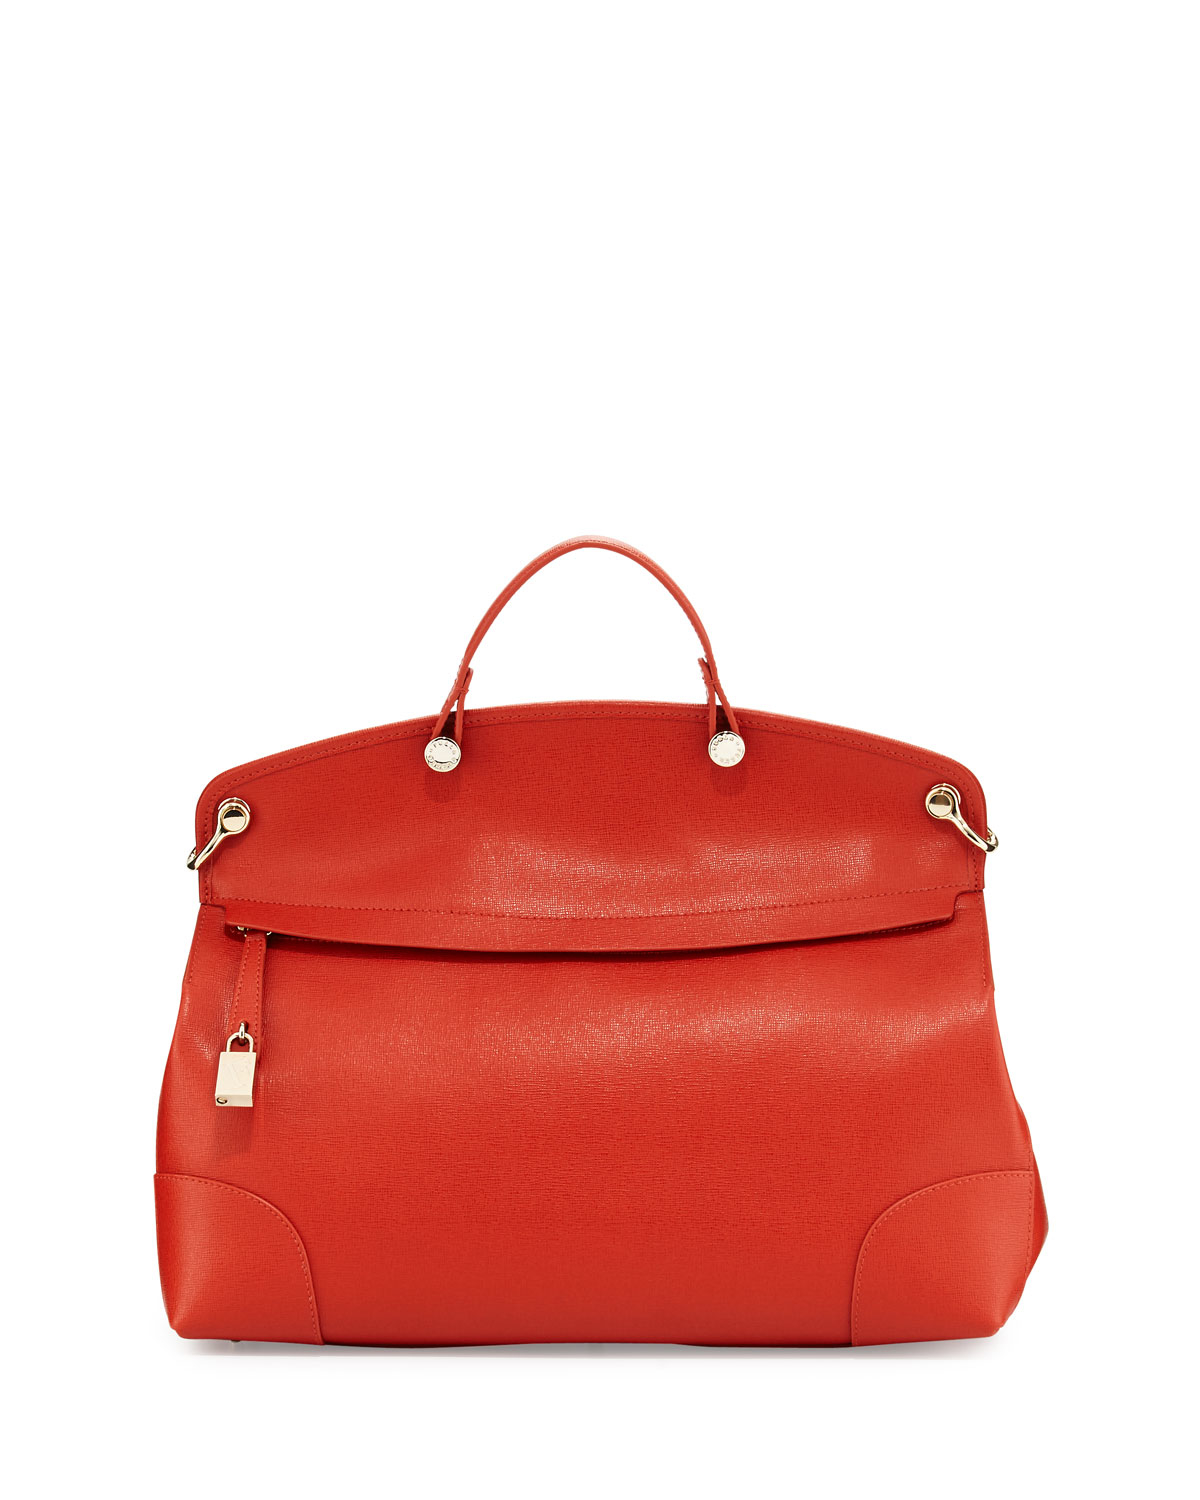 Furla Nikole Large Leather Satchel Bag in Orange | Lyst